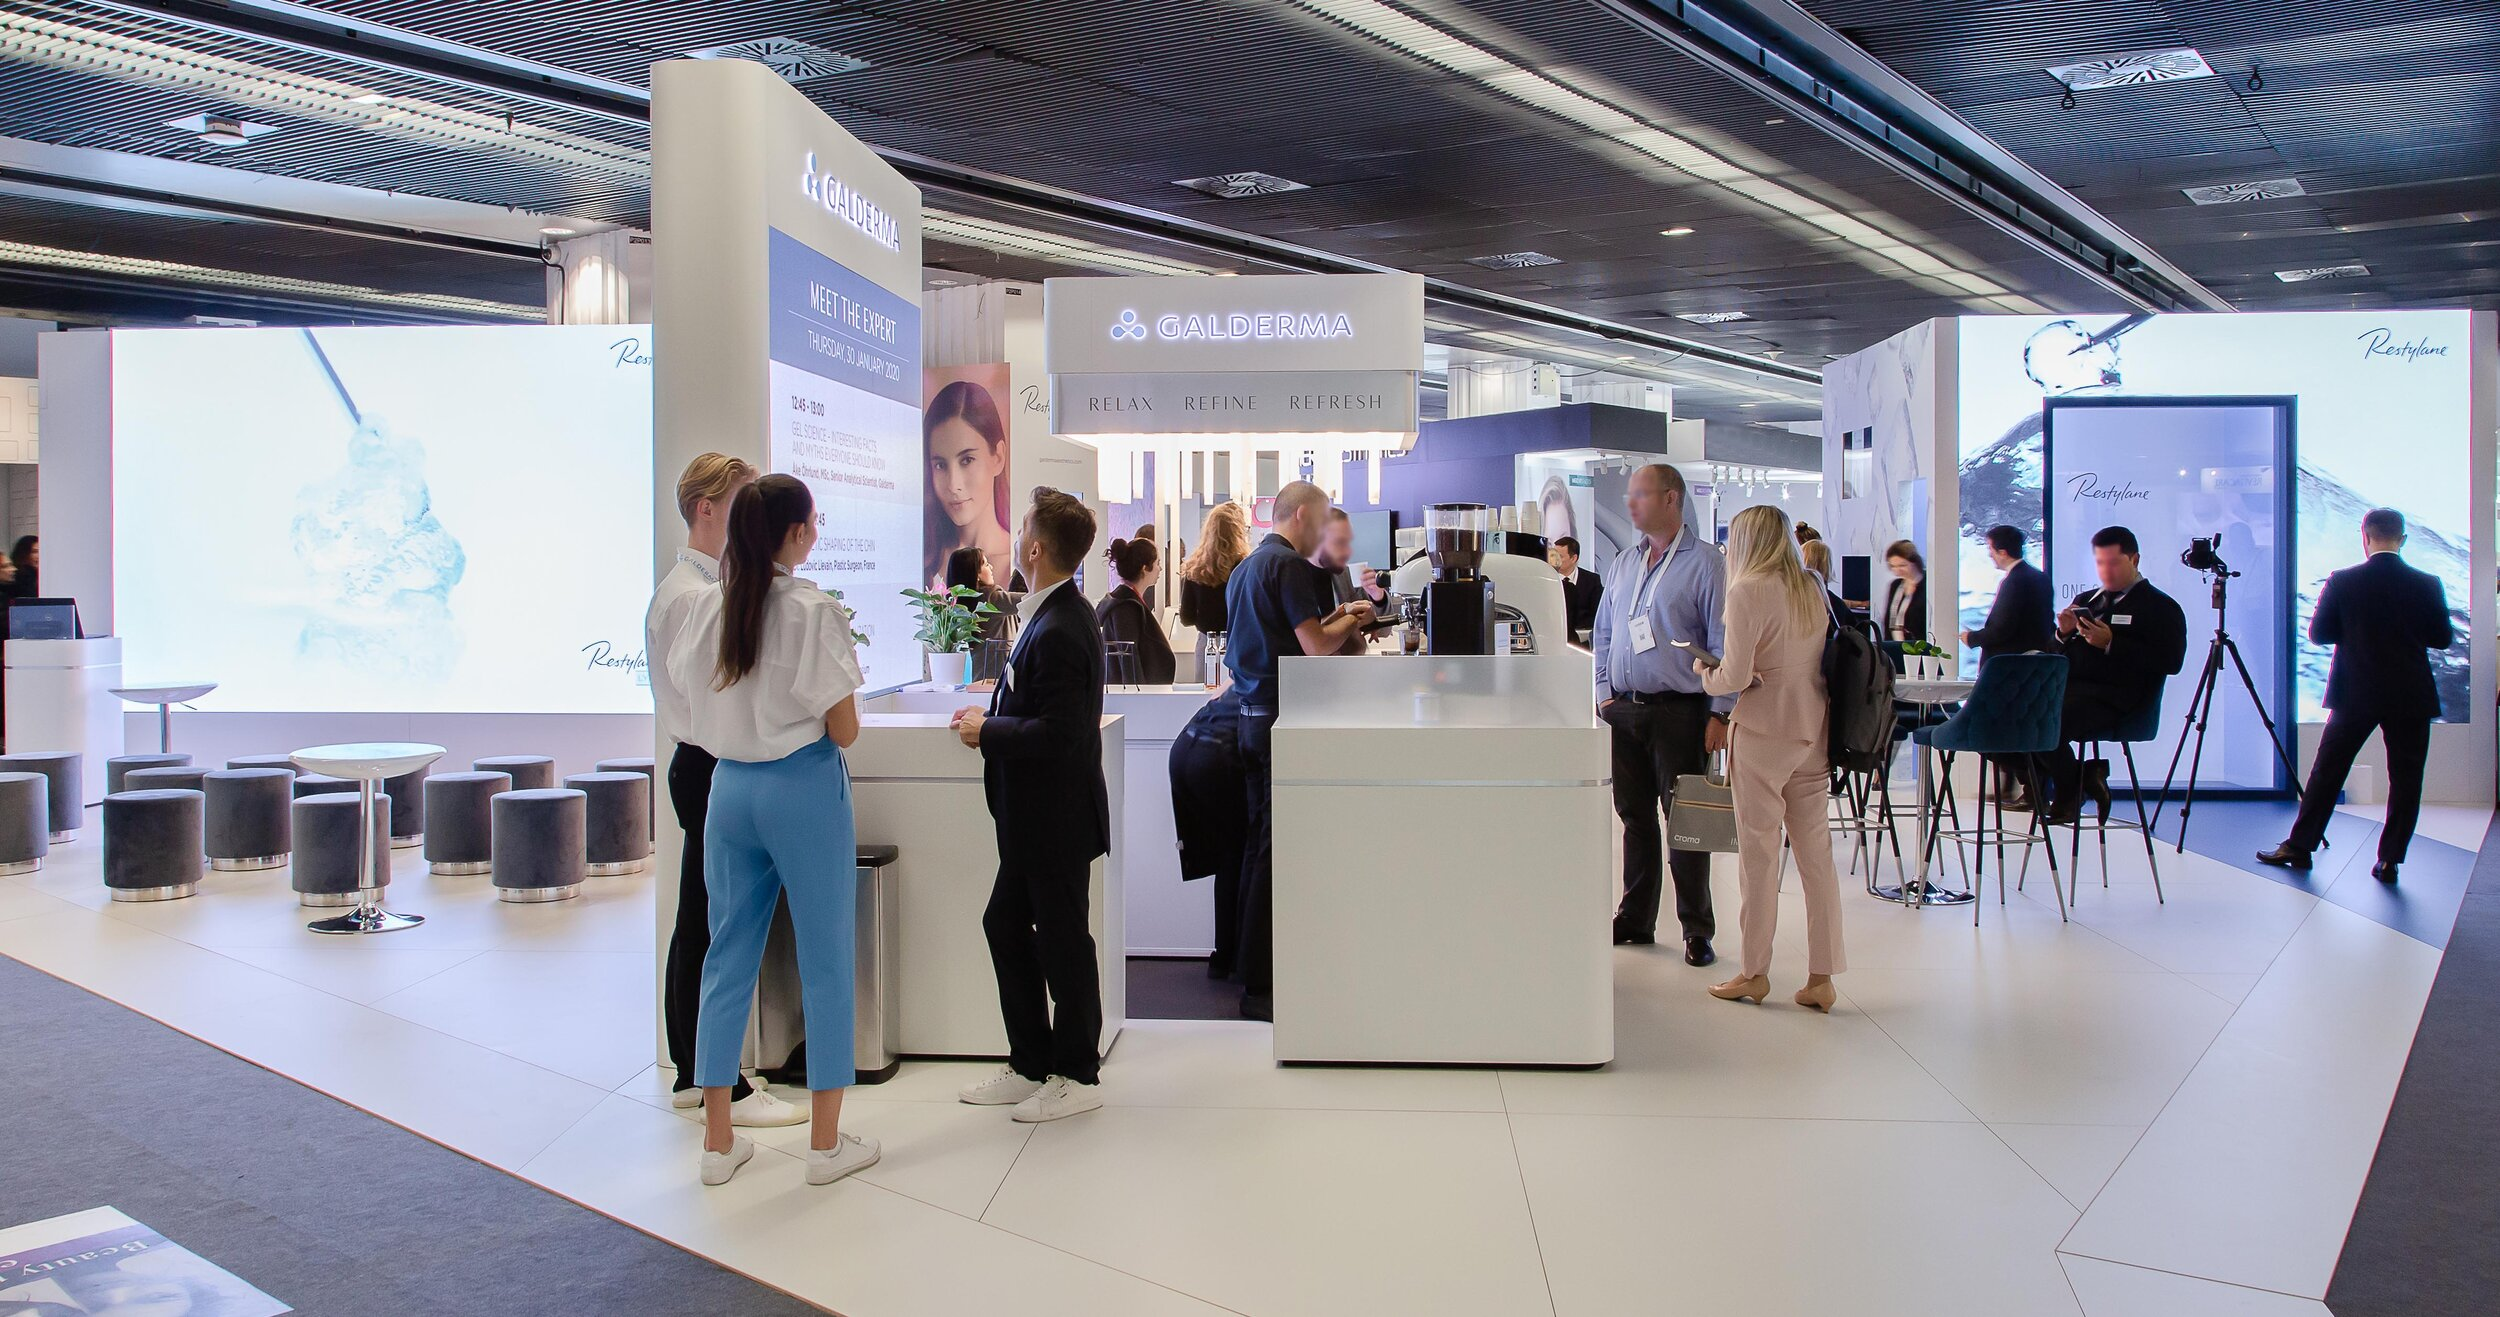 Image of the Galderma booth from Ignition DG at IMCAS world congress - January 2020